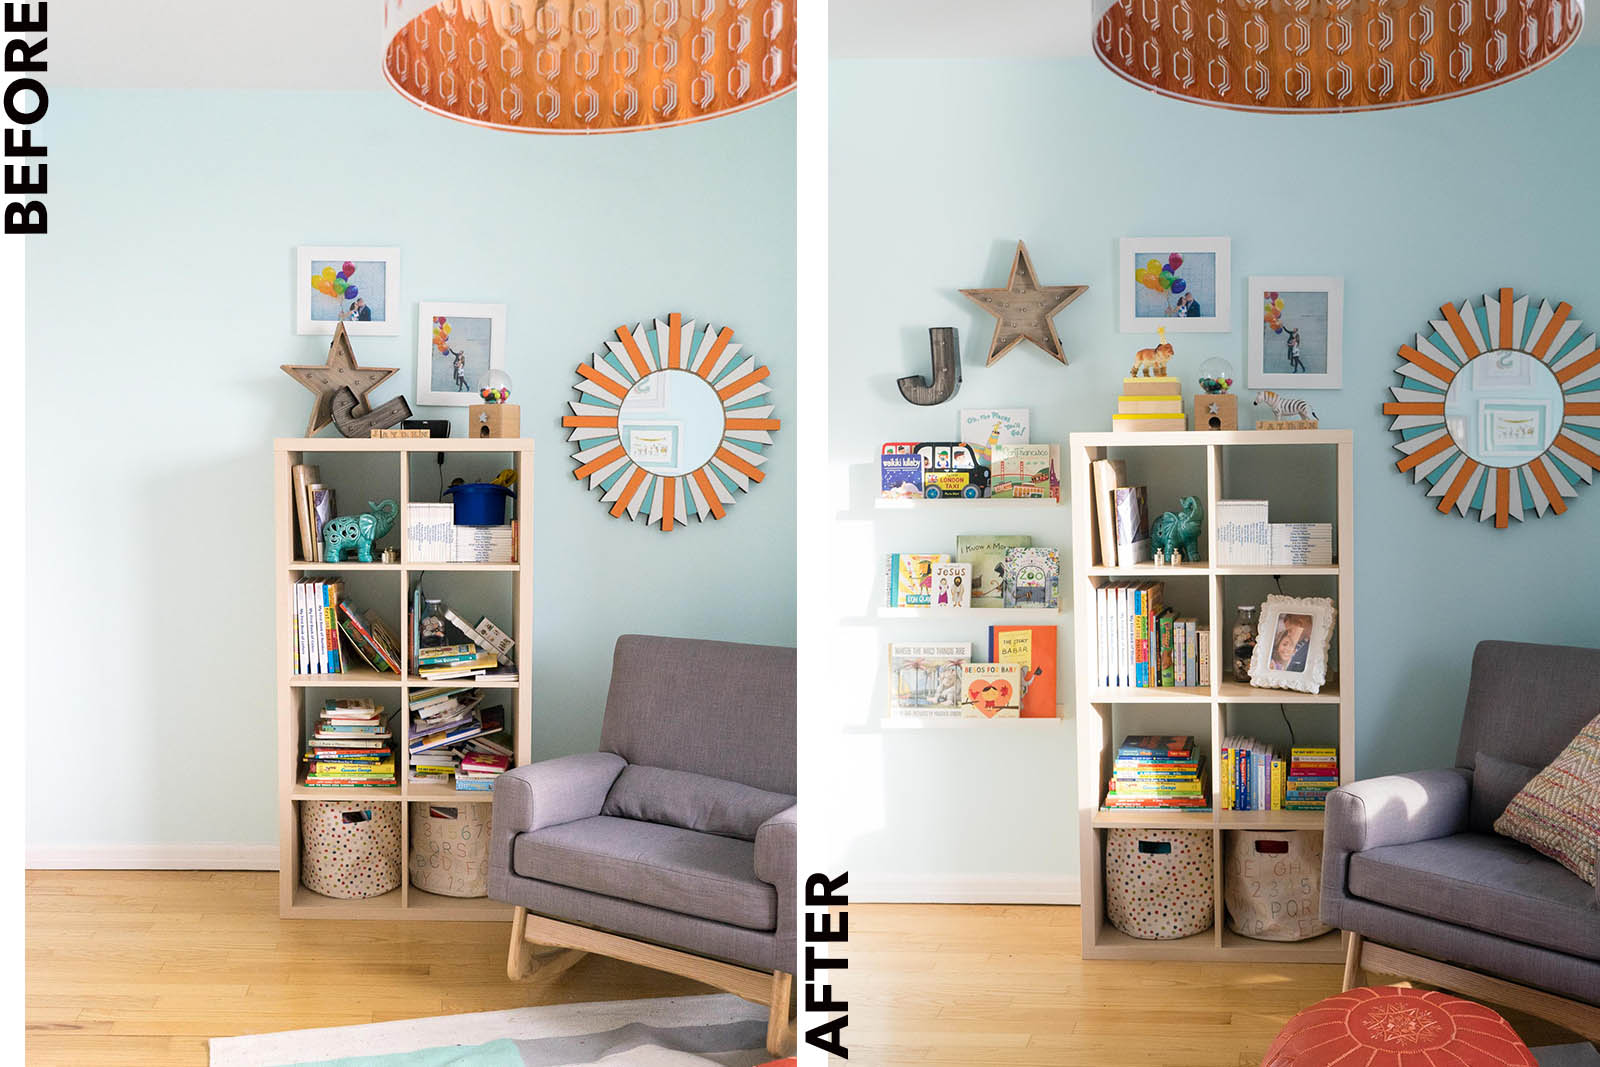 nursery-wall-book-display_before-and-after.jpg